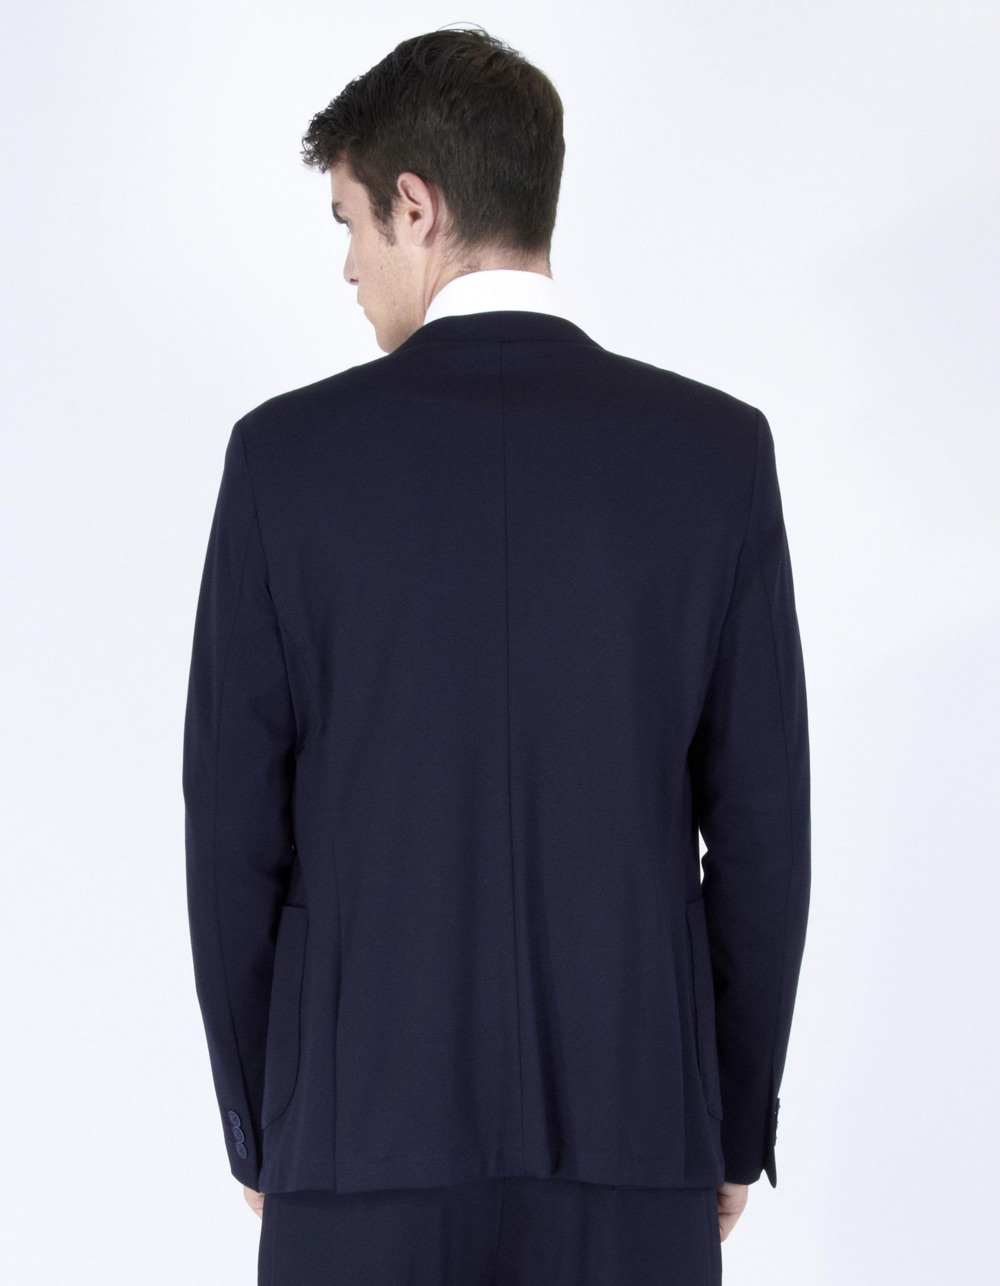 Navy blue jacket - Backside